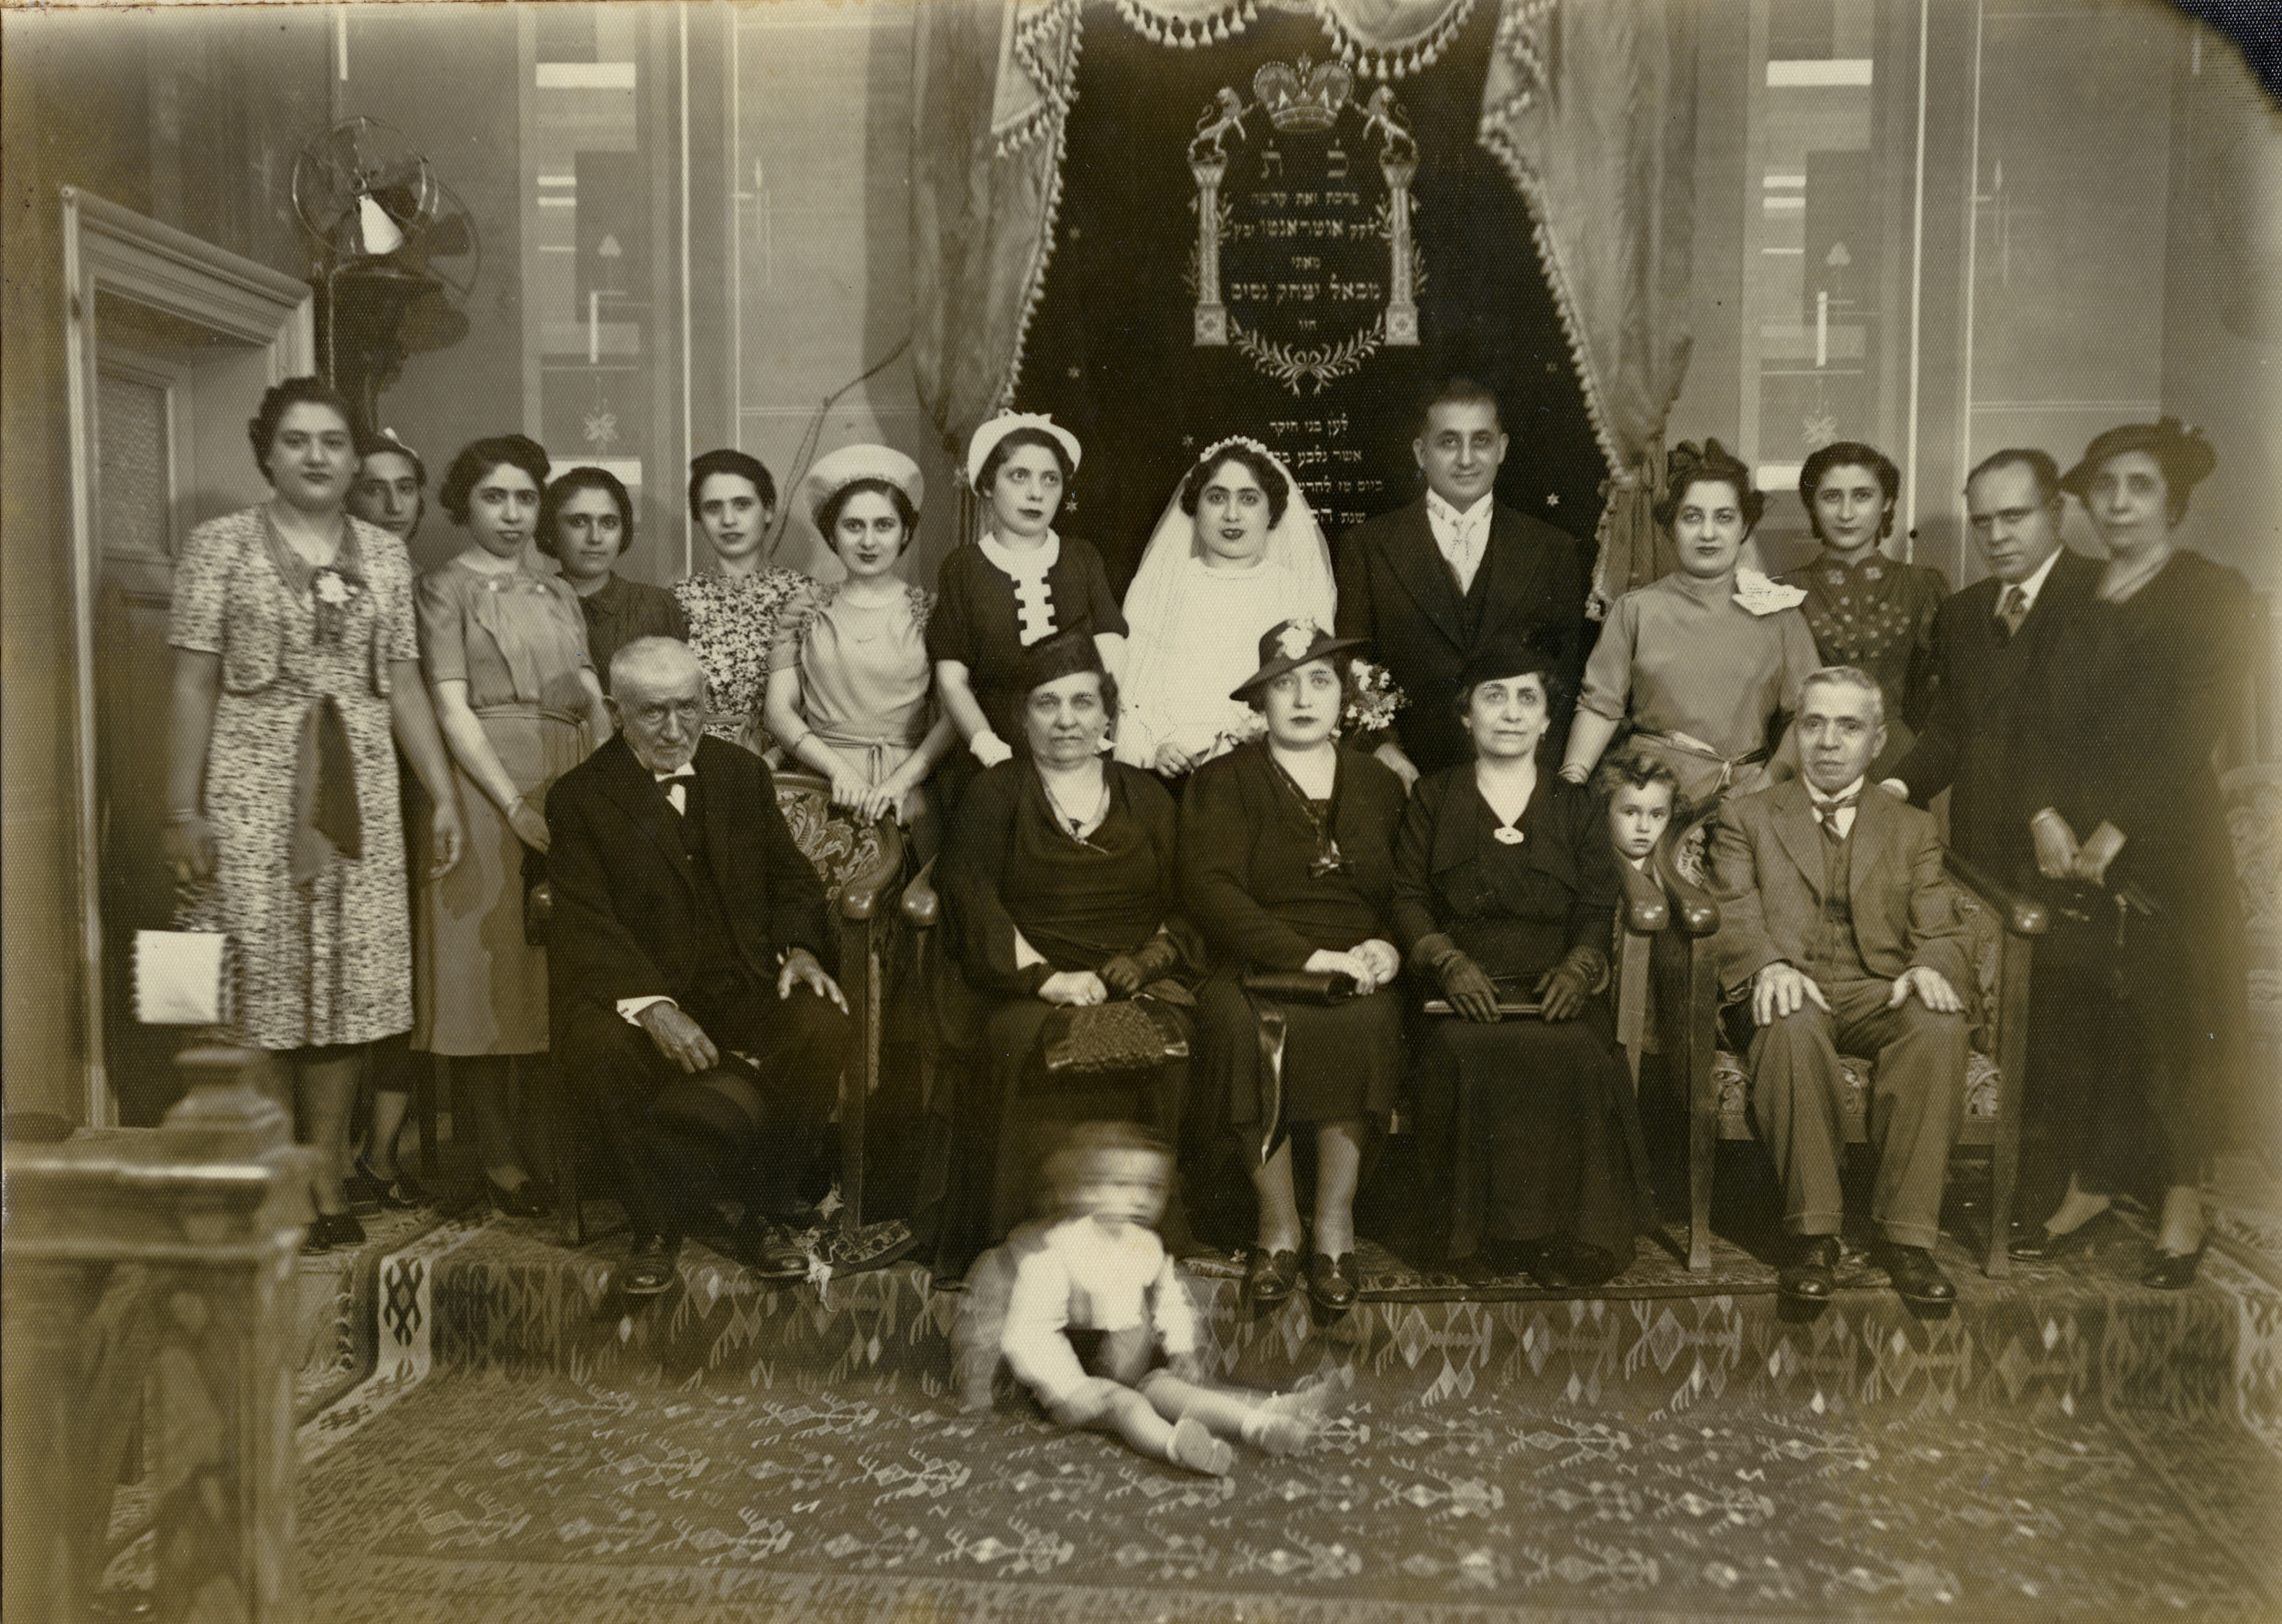 The marriage of Ida Modiano and Leon Mallah (brother of Sara Malach).   Pictured standing in back (left to right) are Rosa Saltiel Behar, Renee Saltiel Arditti, Sarah Modiano, Anna Venezia Avigdor, [a cousin] Modiano, Mathilde Venezia Fridman, Margot Modiano, Ida Modiano Mallach, Leon Mallah, Dory Maissa (child), Regina Mallah Maissa, Margot Venezia Cohen, Sam Maissa, and Sara Mallah Venezia.  Seated (left to right) are Isaac Mallah, Bella Mallah Saltiel, Allegra Mallah Benforado [?], Ricoula Mallah Modiano, and Jacob Modiano.  Seated in front is Inico Maissa.    Both the bride and groom were deported, as well as Sarah Modiano, Margot Modiano, Regina Mallah Maissa, Sam Maissa, Allegra Mallah Benforado [?], Ricoula Mallah Modiano, Jacob Modiano, and Inco Maissa.